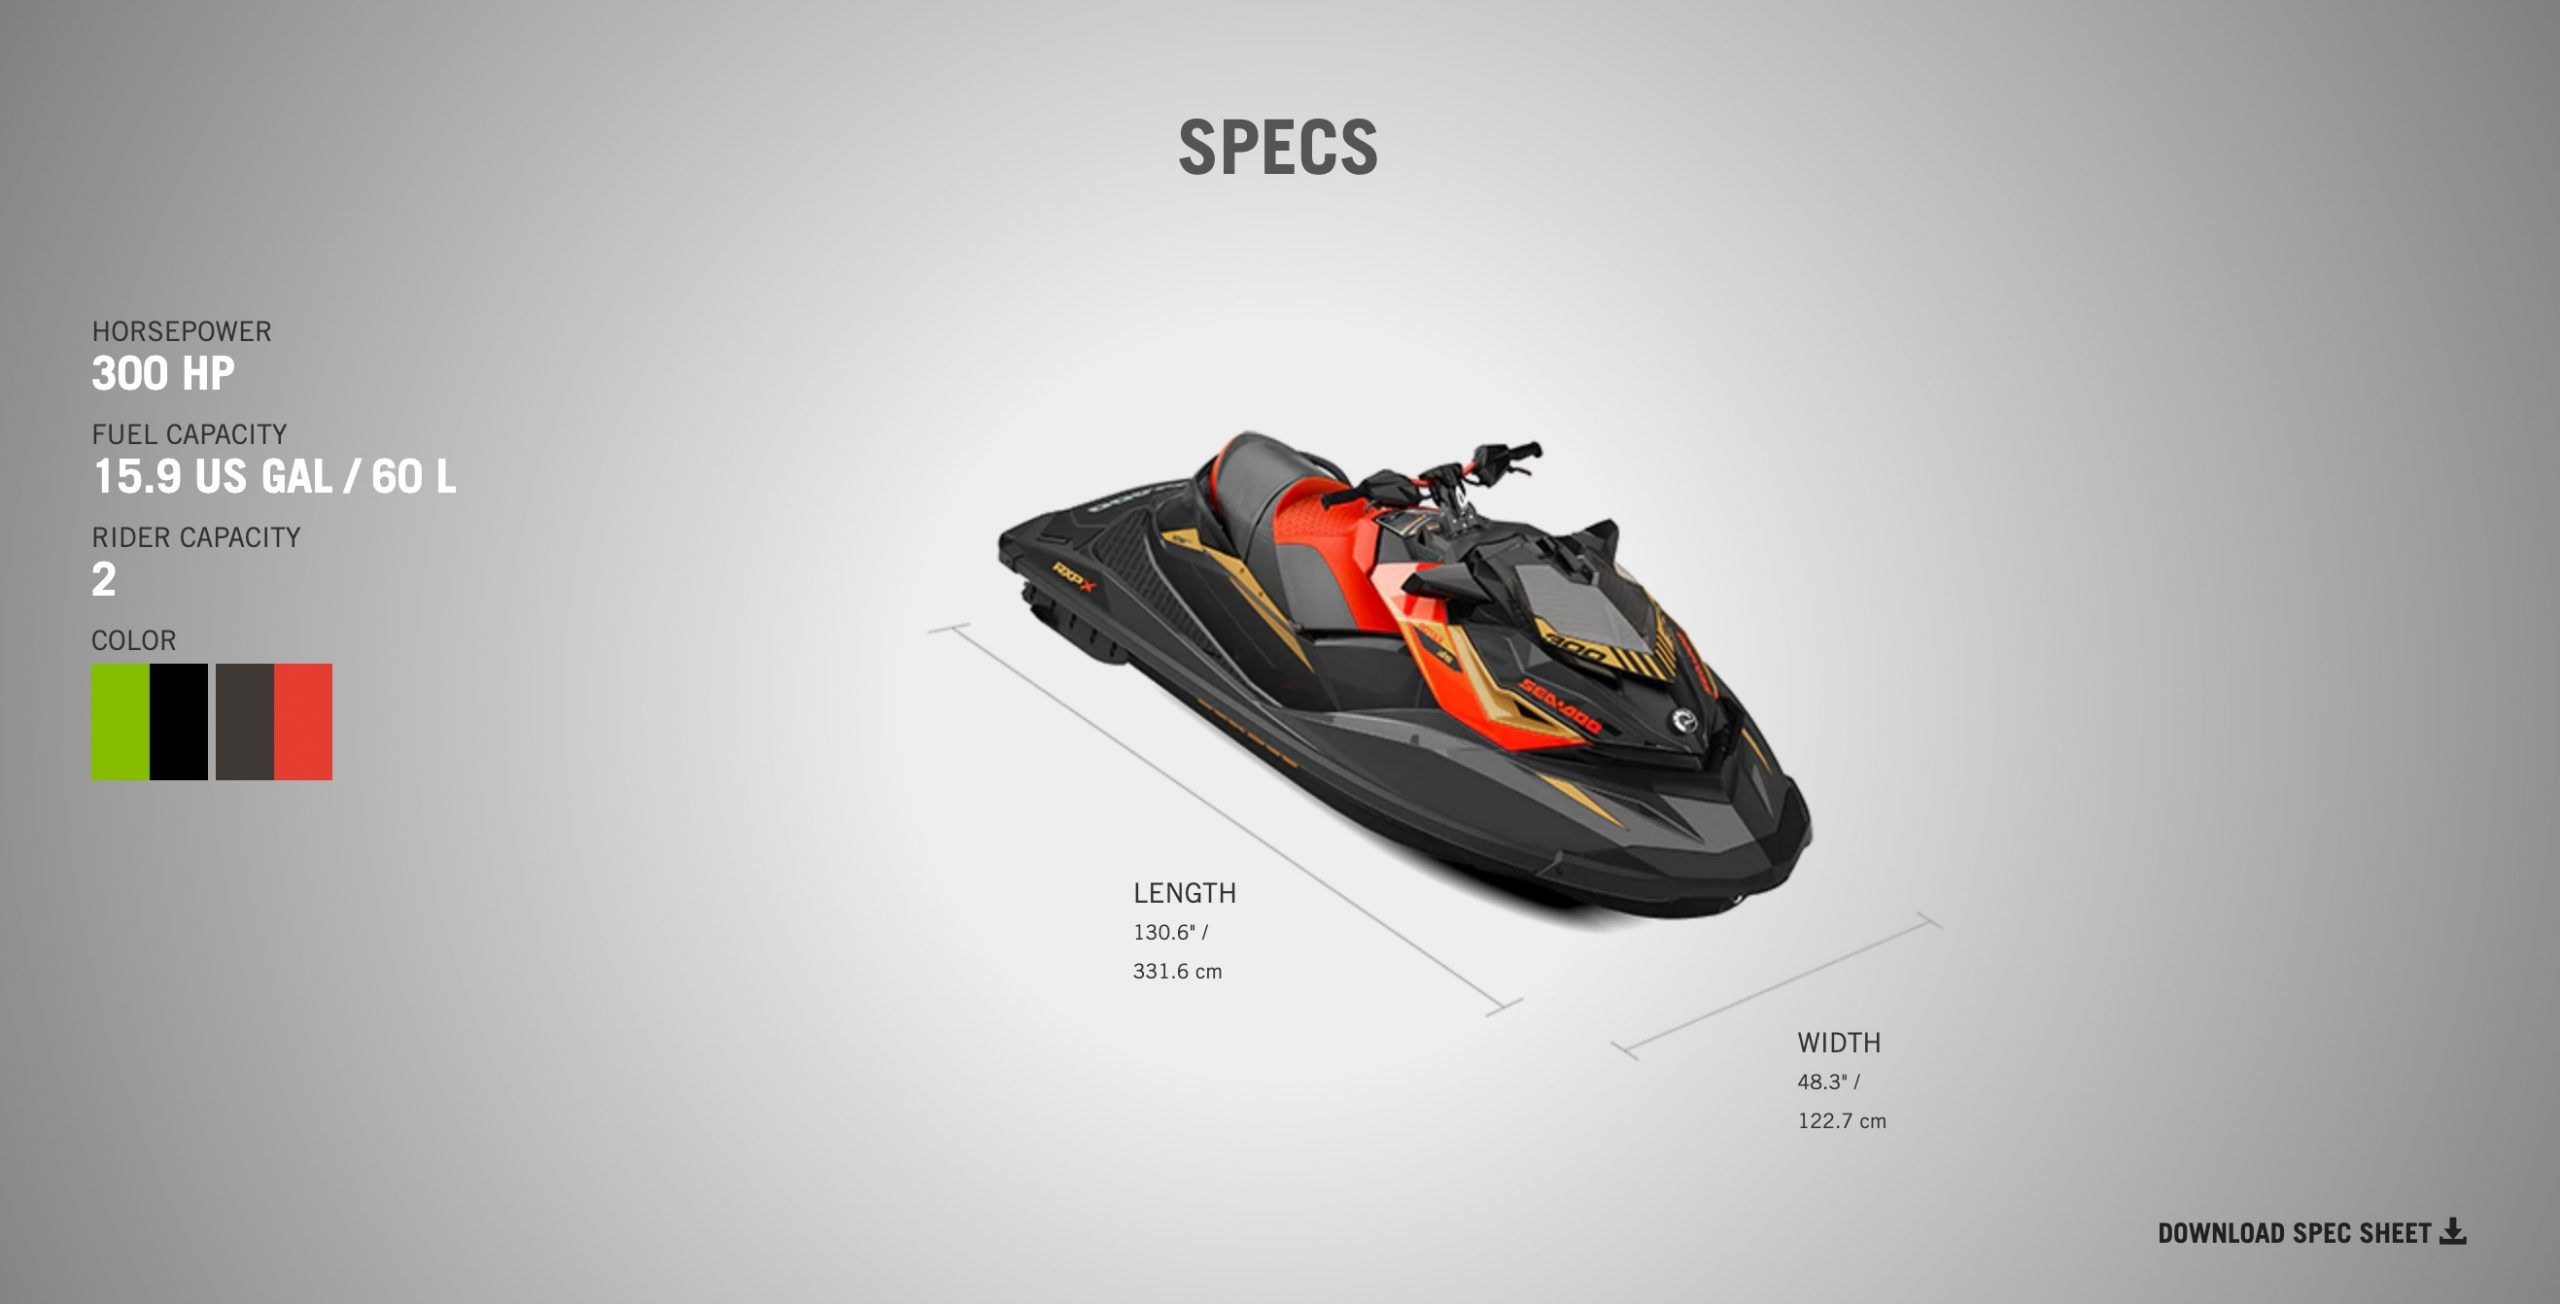 specs for the 2020 rxp-x 300 sea doo from jolly roger marina in nj